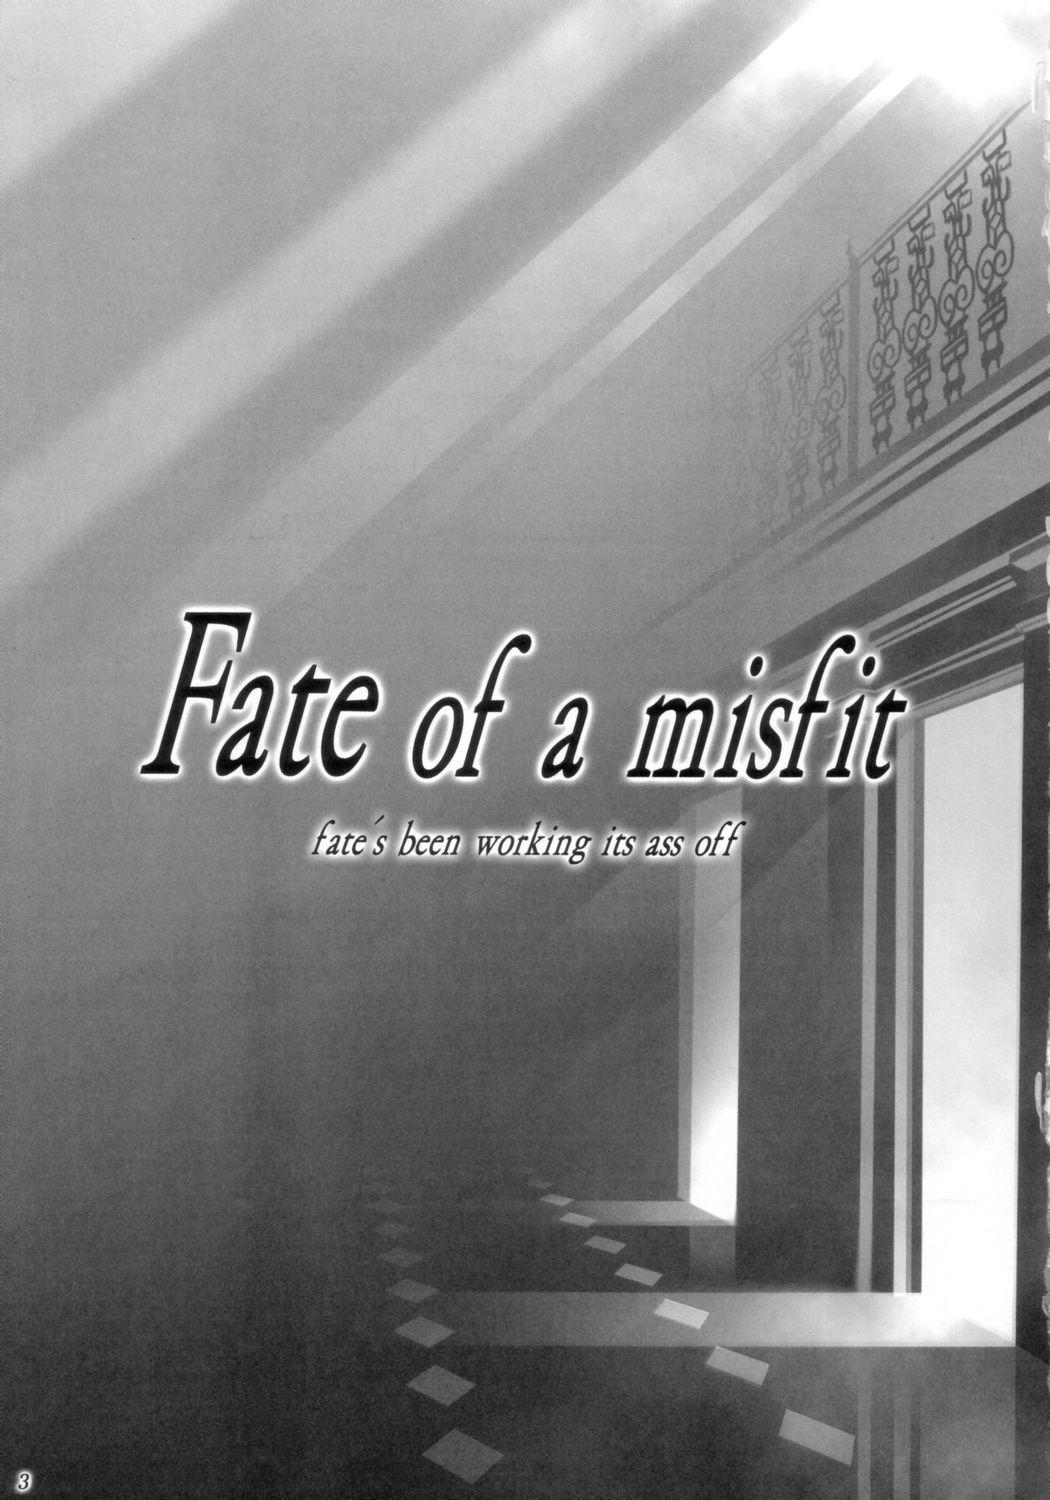 Fate of a misfit 1